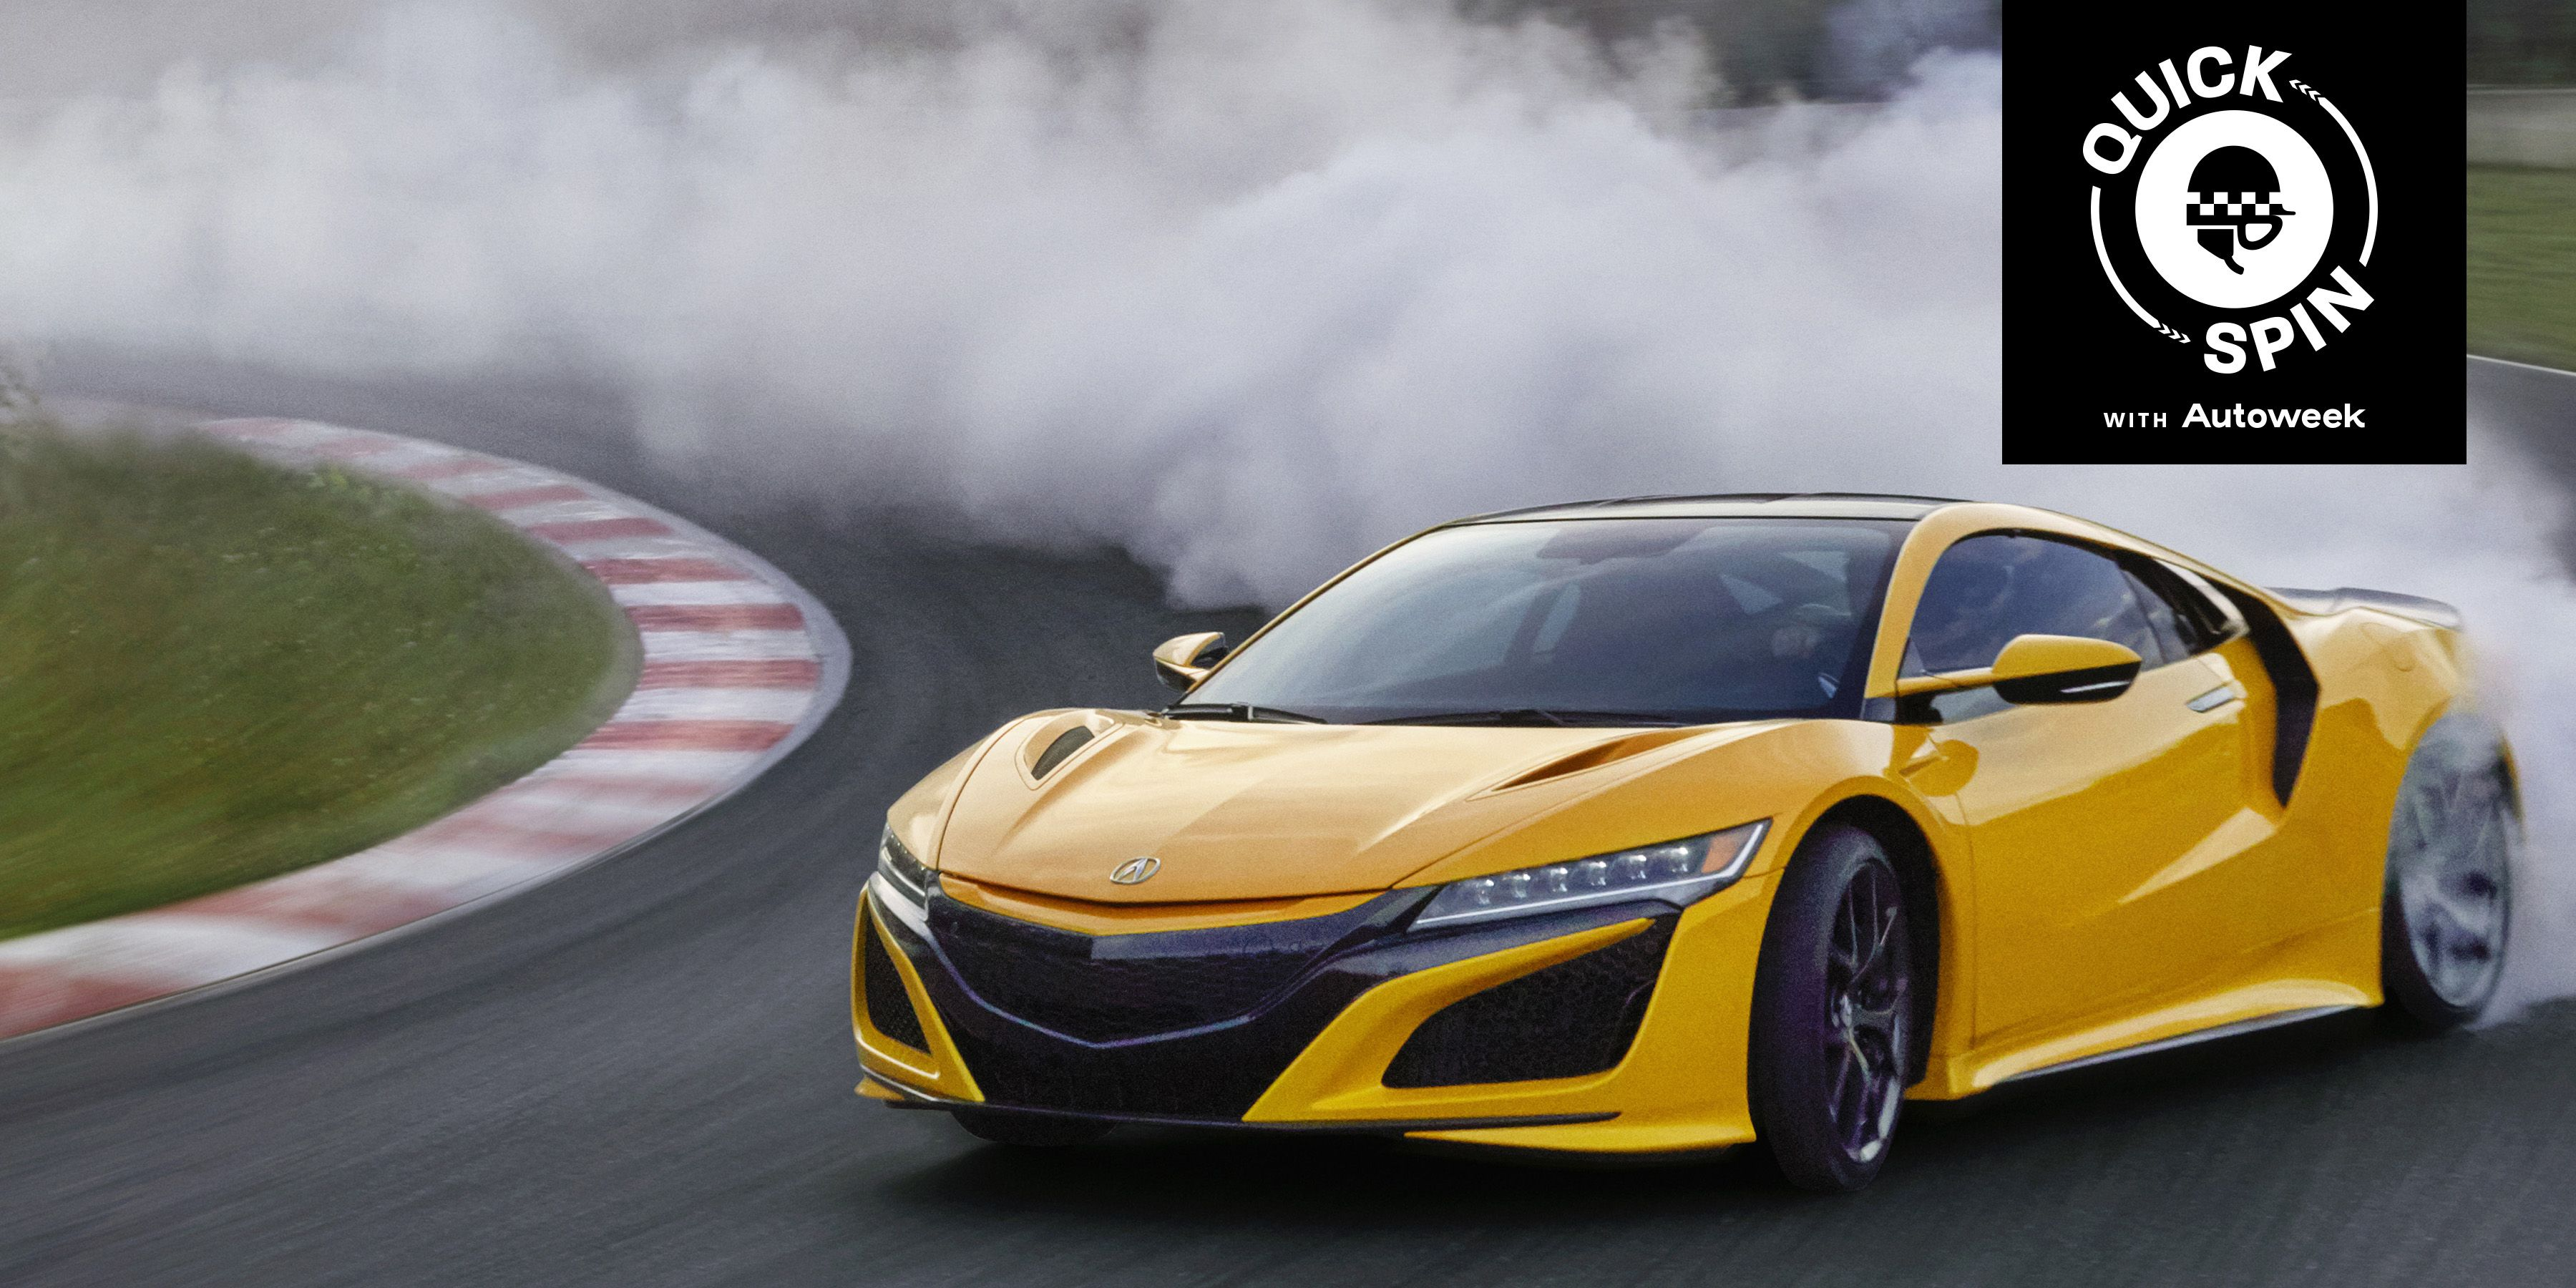 The 2020 Acura Nsx Is Your Silent Supercar